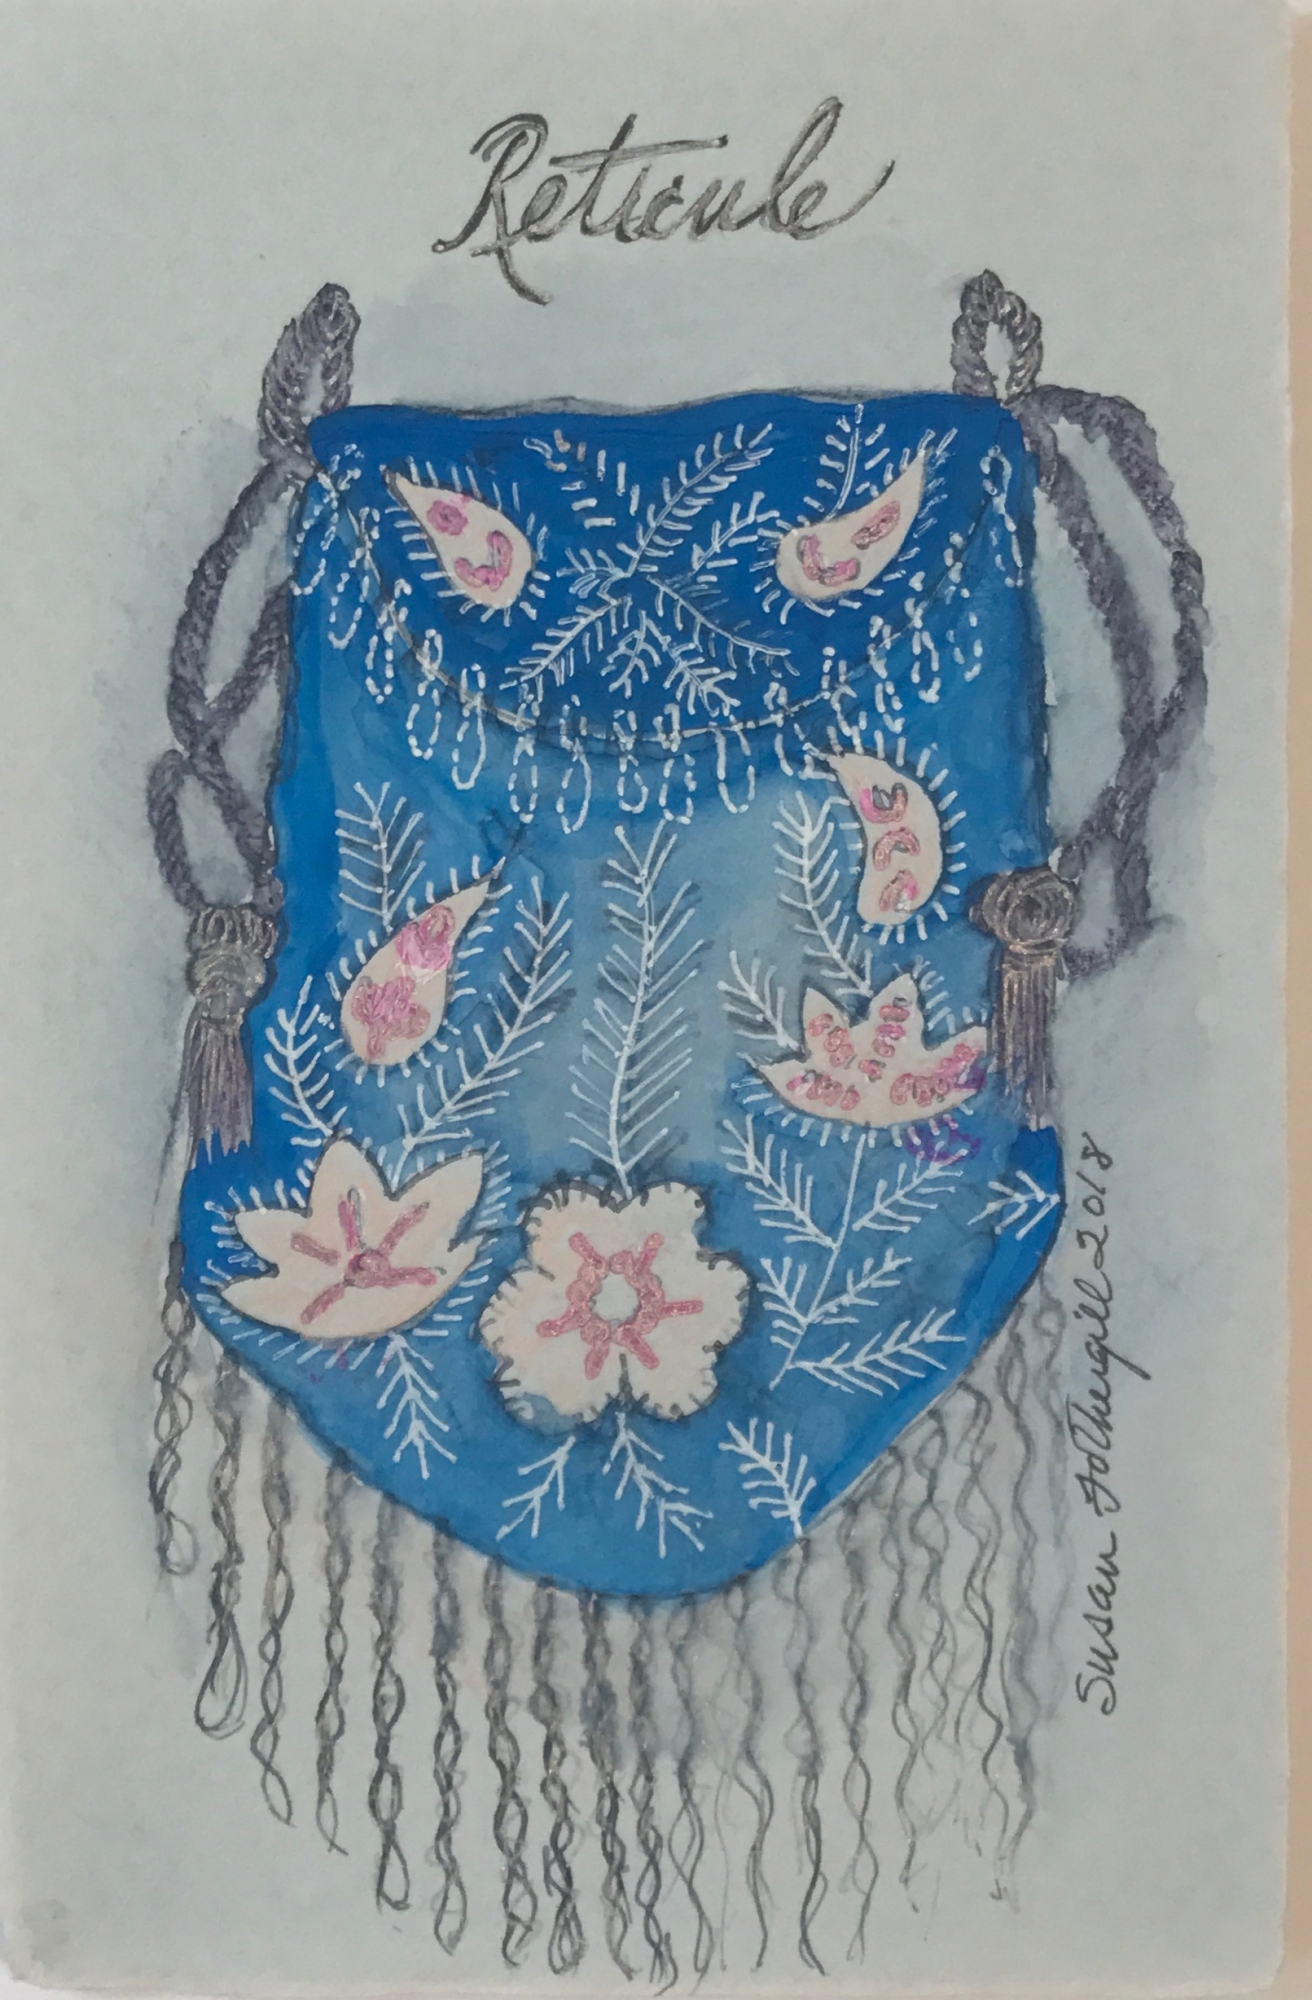 Reticule with Flowers and Tassel by Susan Fothergill